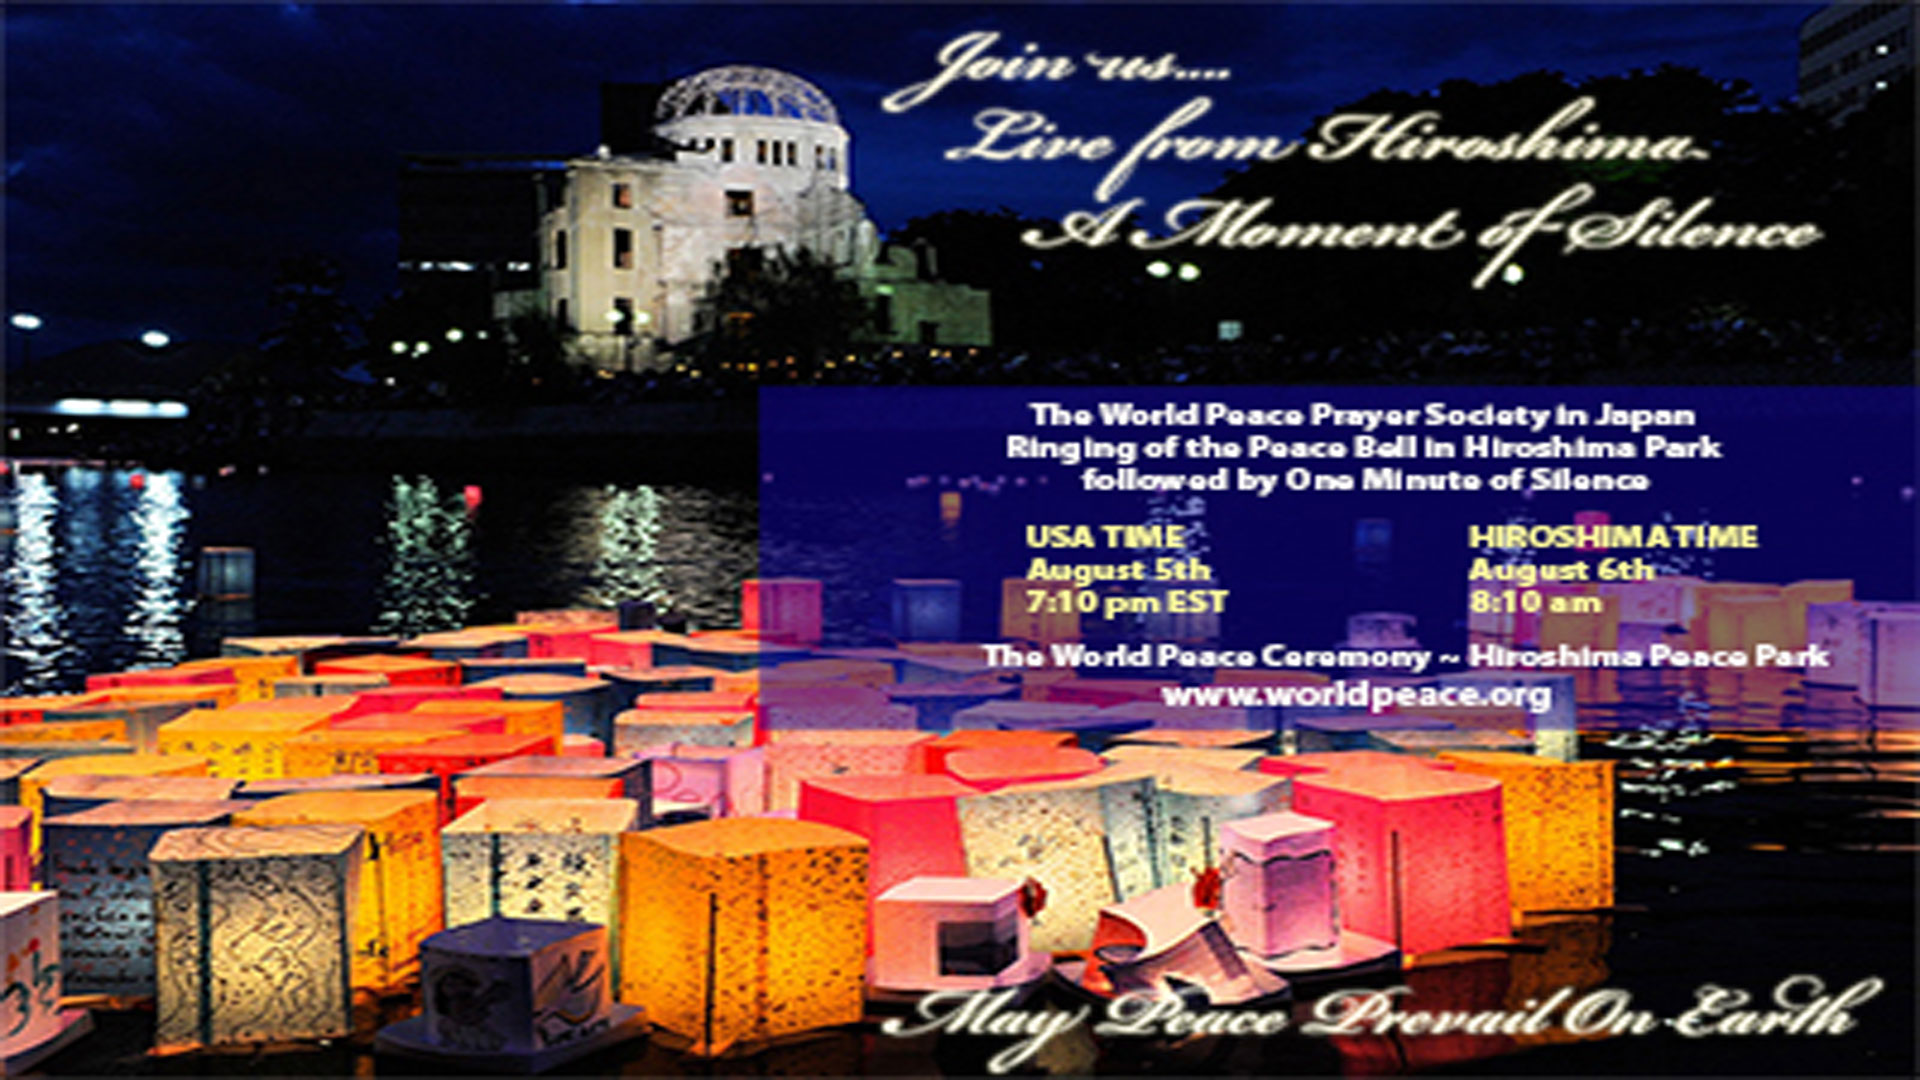 Join us LIVE in Hiroshima – August 5th/6th 2014